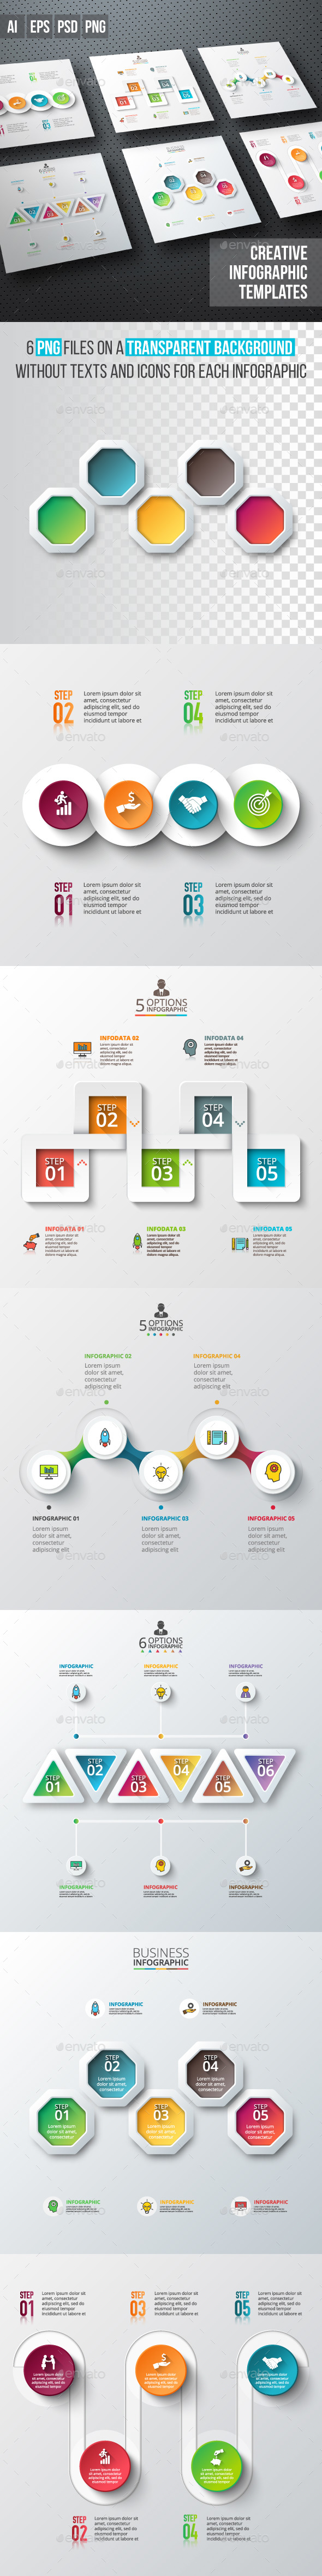 Business infographic diagrams v.04